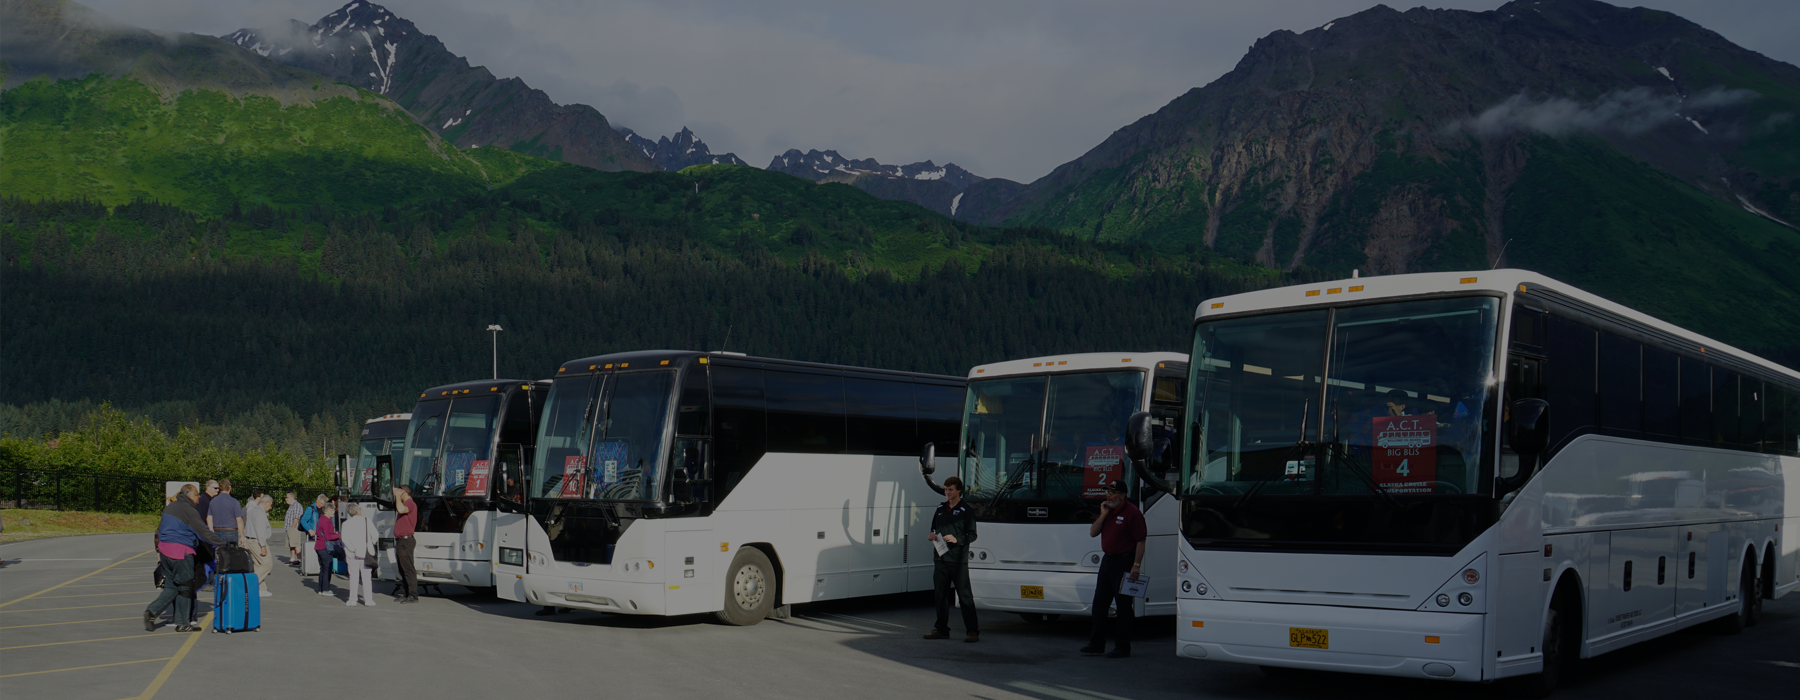 Whittier to Anchorage bus